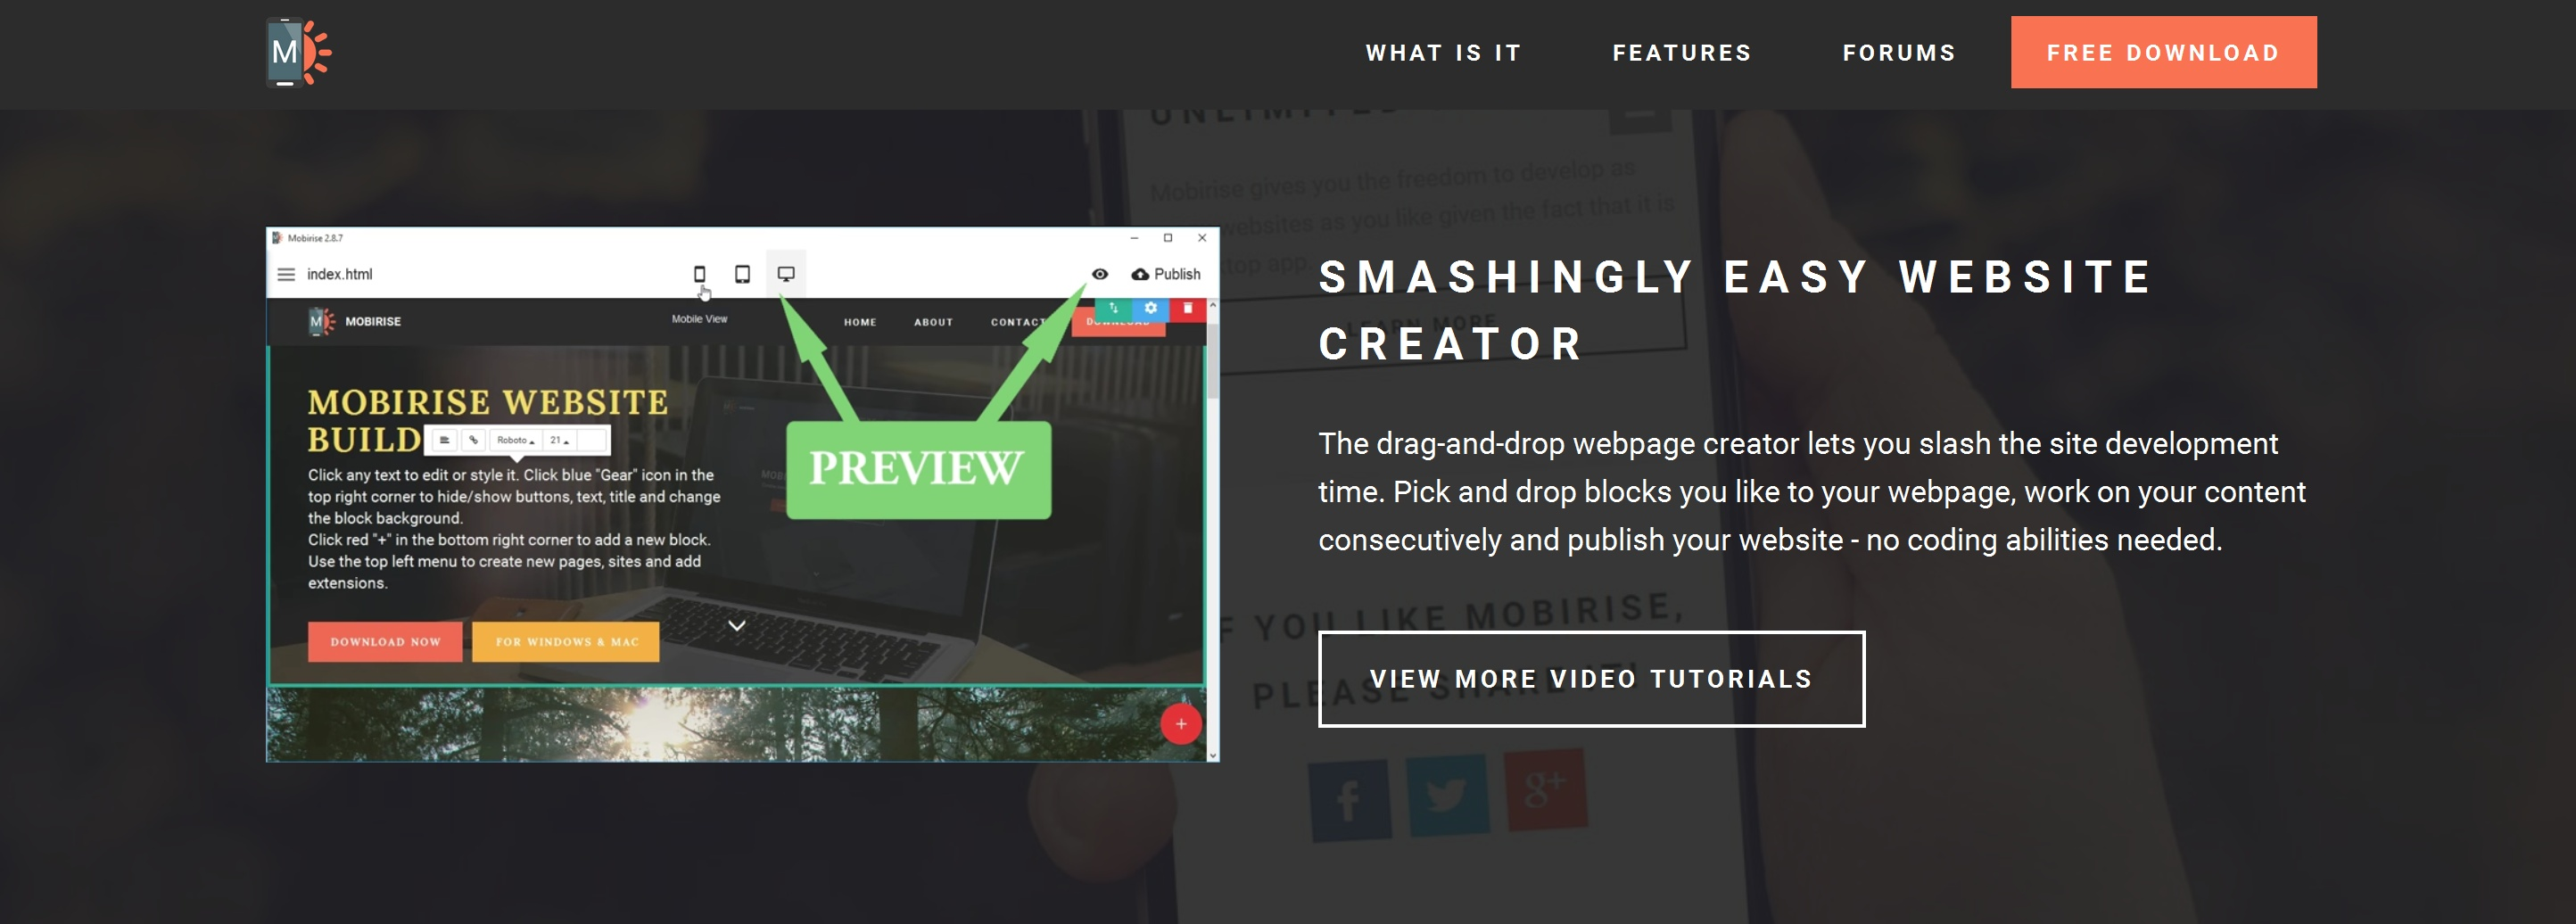 Quick Drag and Drop Web Page  Creator Software